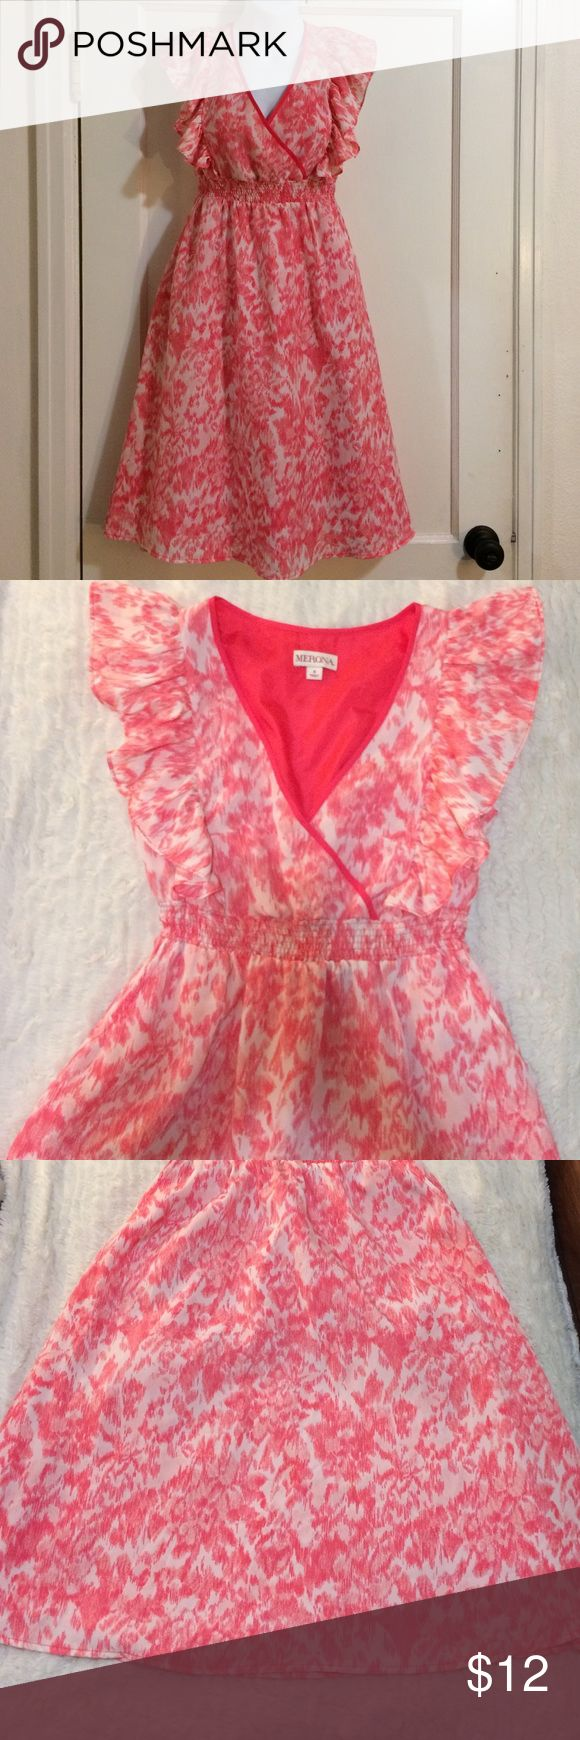 Merona pink & white girly ruffle dress size 4 Very cute pink & white abstract patterned dress. V neck with ruffle detail. Very girly and flirty. Flattering with elastic empire waist and flowy. Size 4. Arm pit to pit measures approximately 16.5 inches and total length from shoulder to hem measures approximately 39-40 inches. It has pockets and is fully lined!       (1-43) Merona Dresses Mini